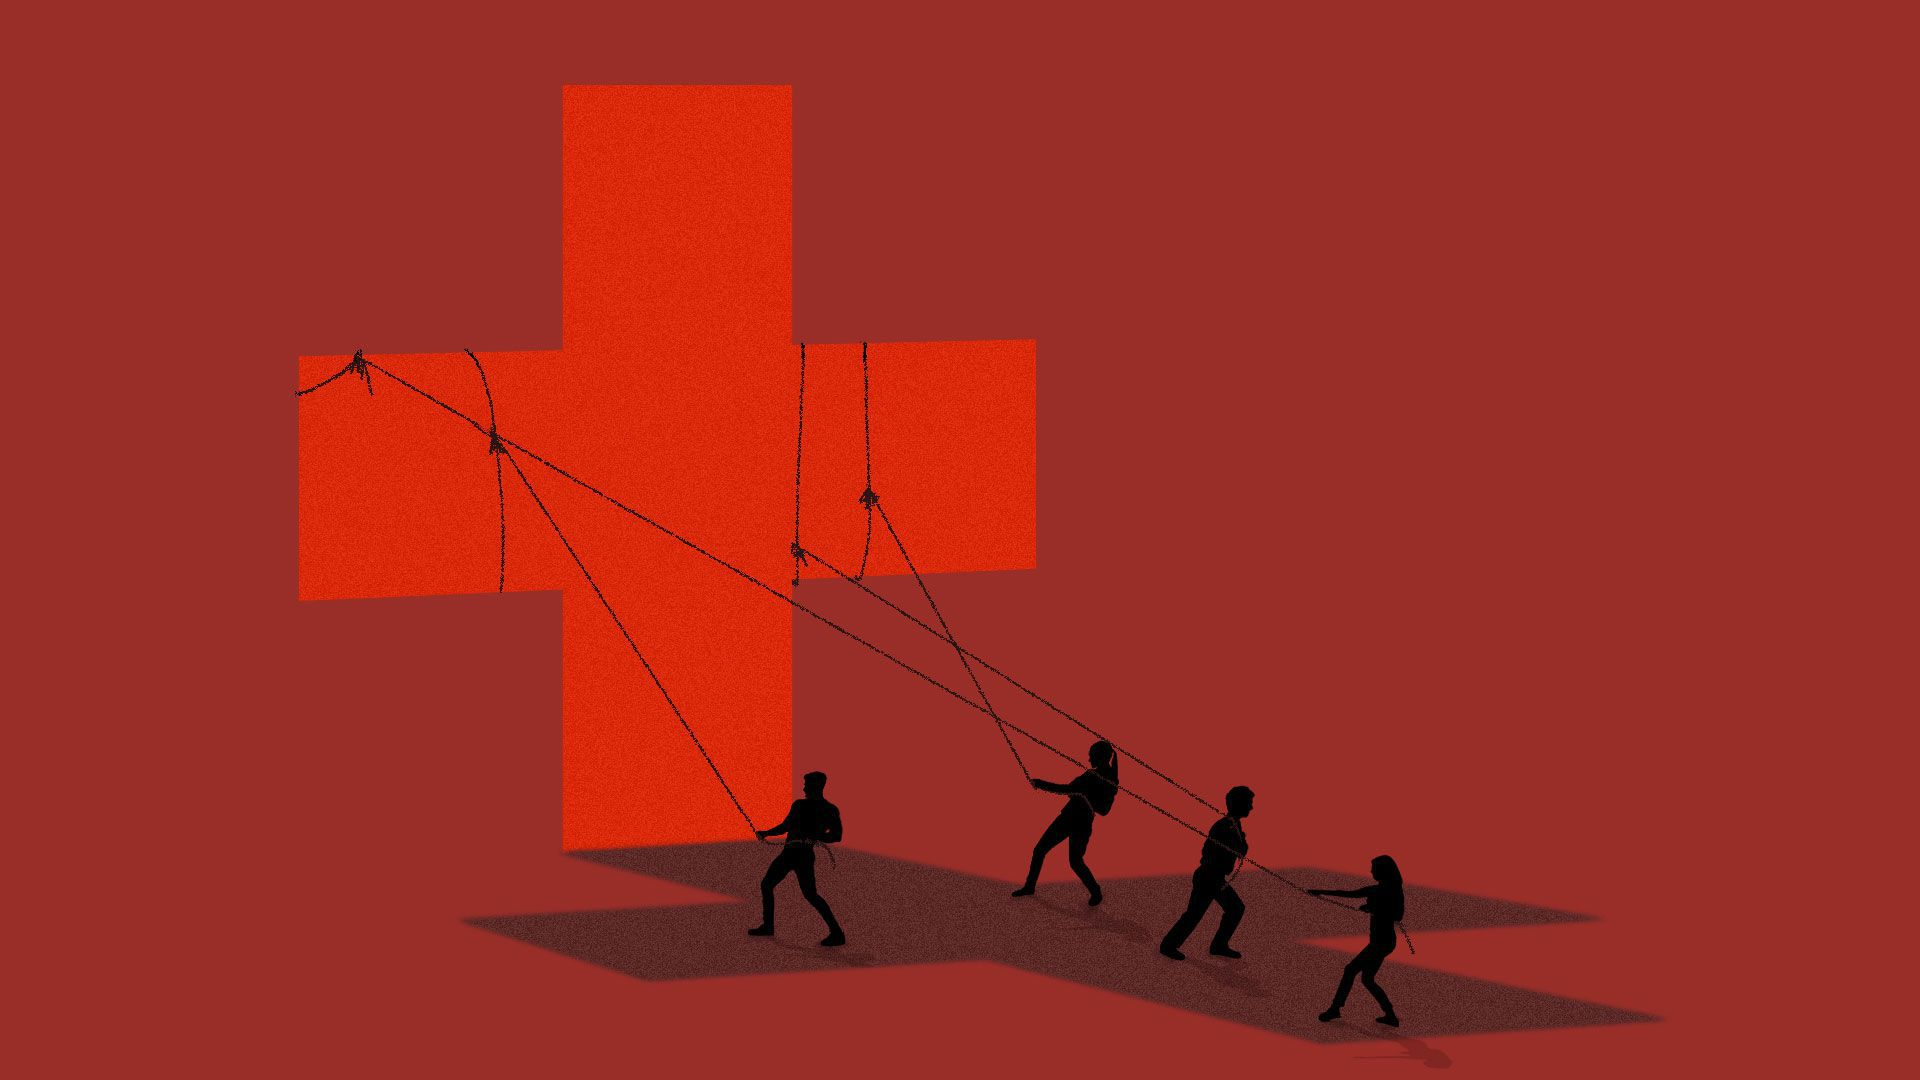 Illustration of people pulling a red cross